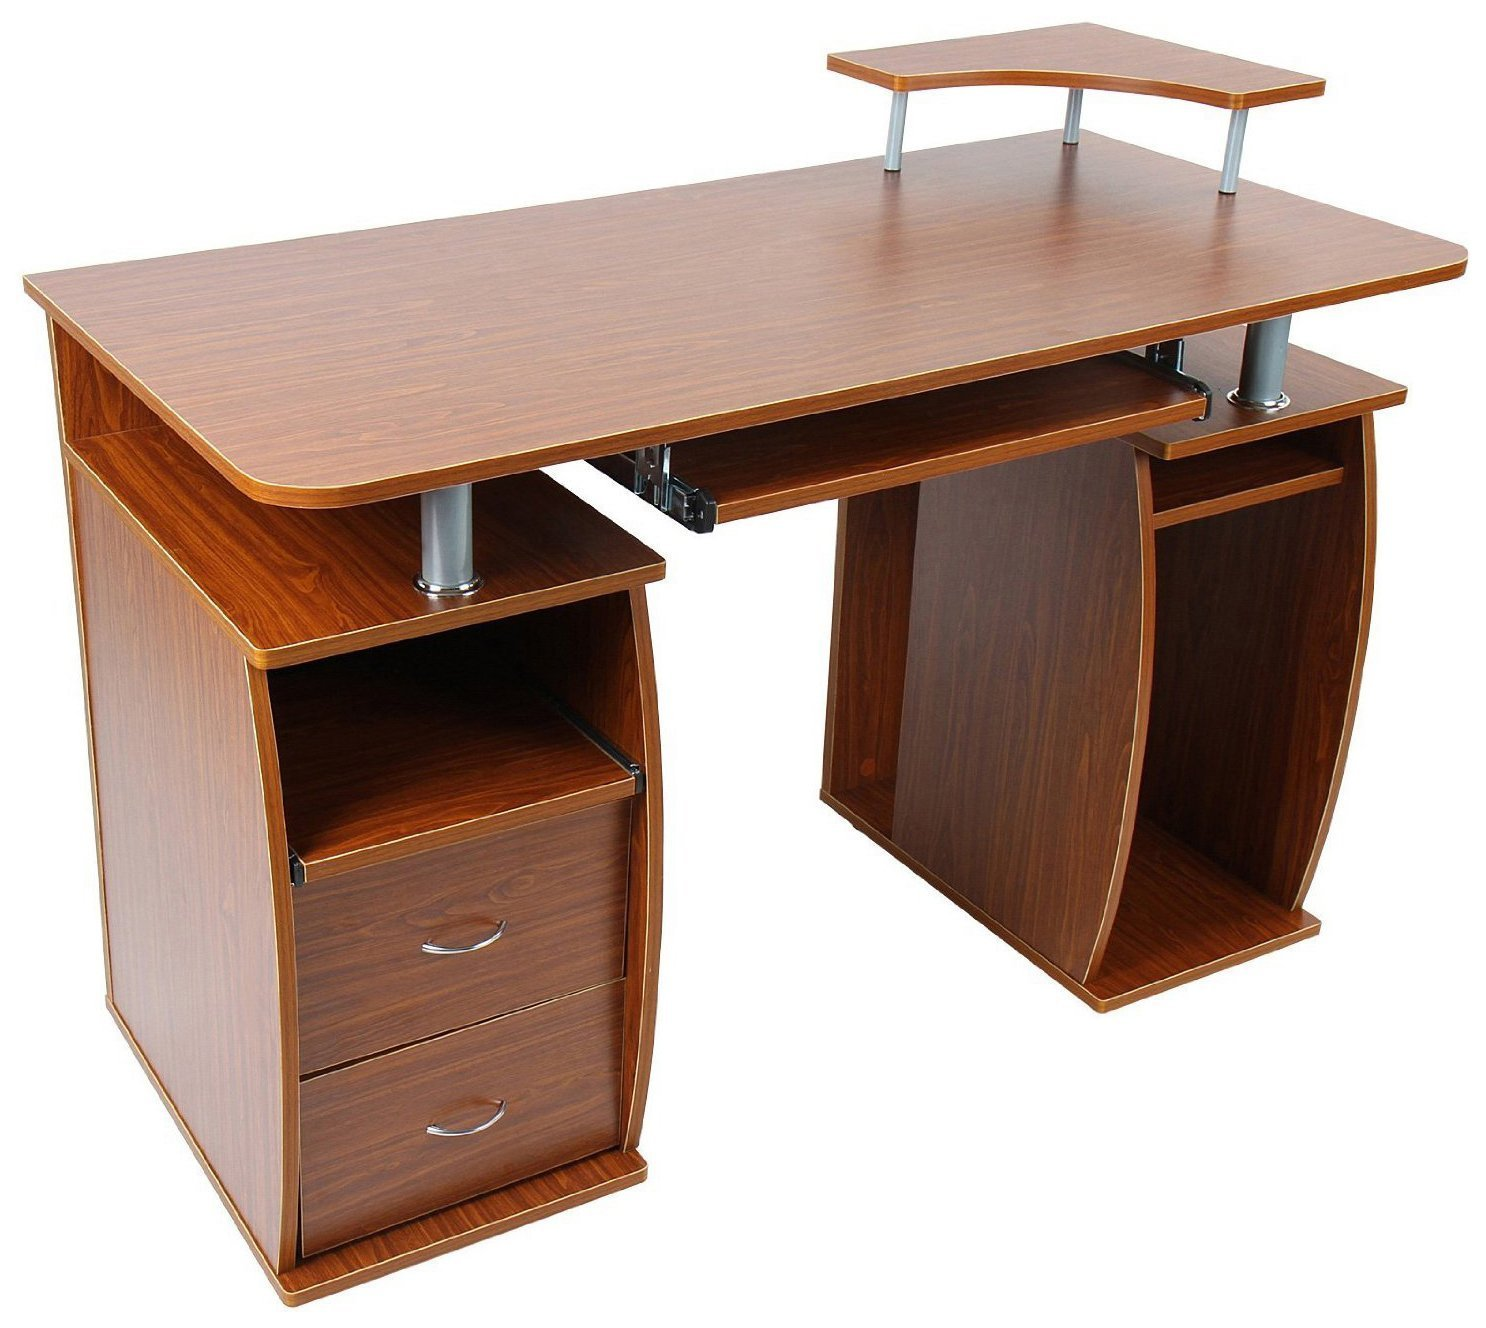 Incredible Homcom 48 Multi Level Computer Desk With Shelves Natural Wood Brown Download Free Architecture Designs Scobabritishbridgeorg